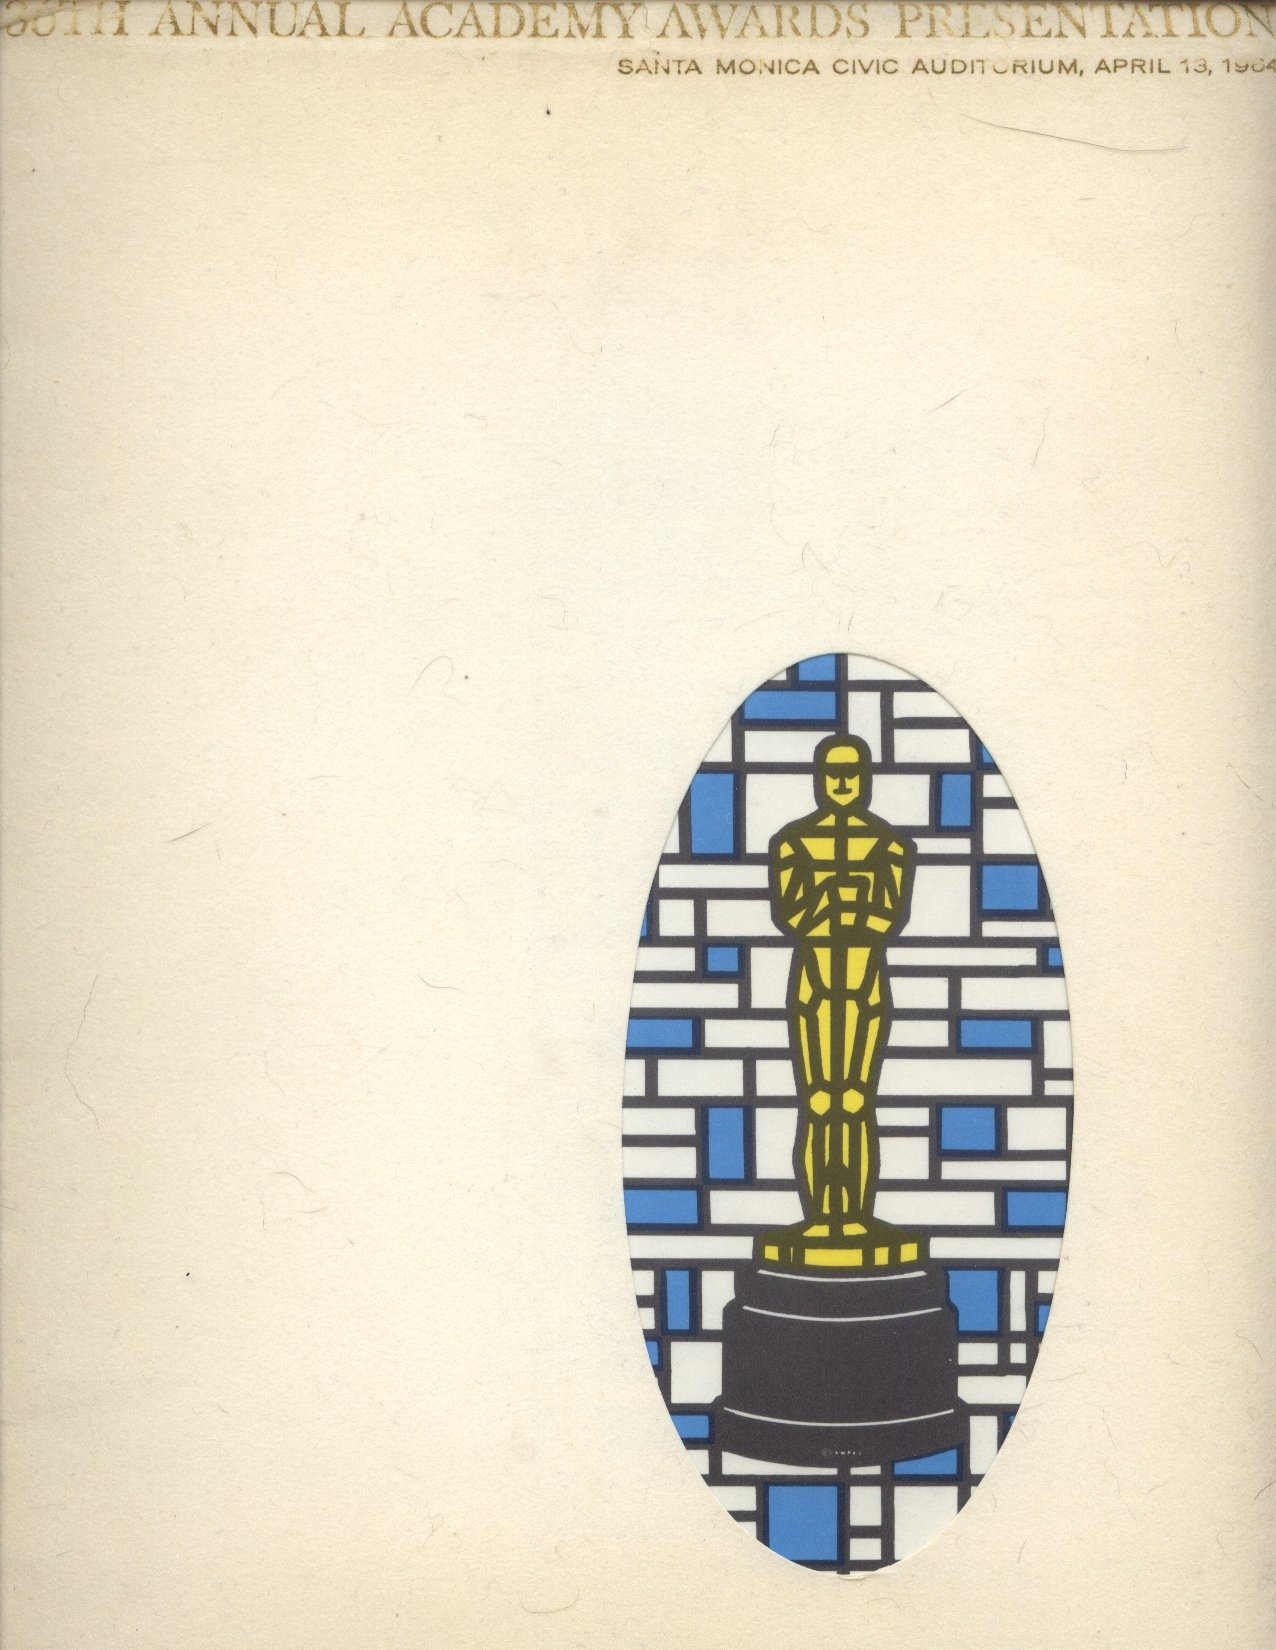 academy awards programs 1959